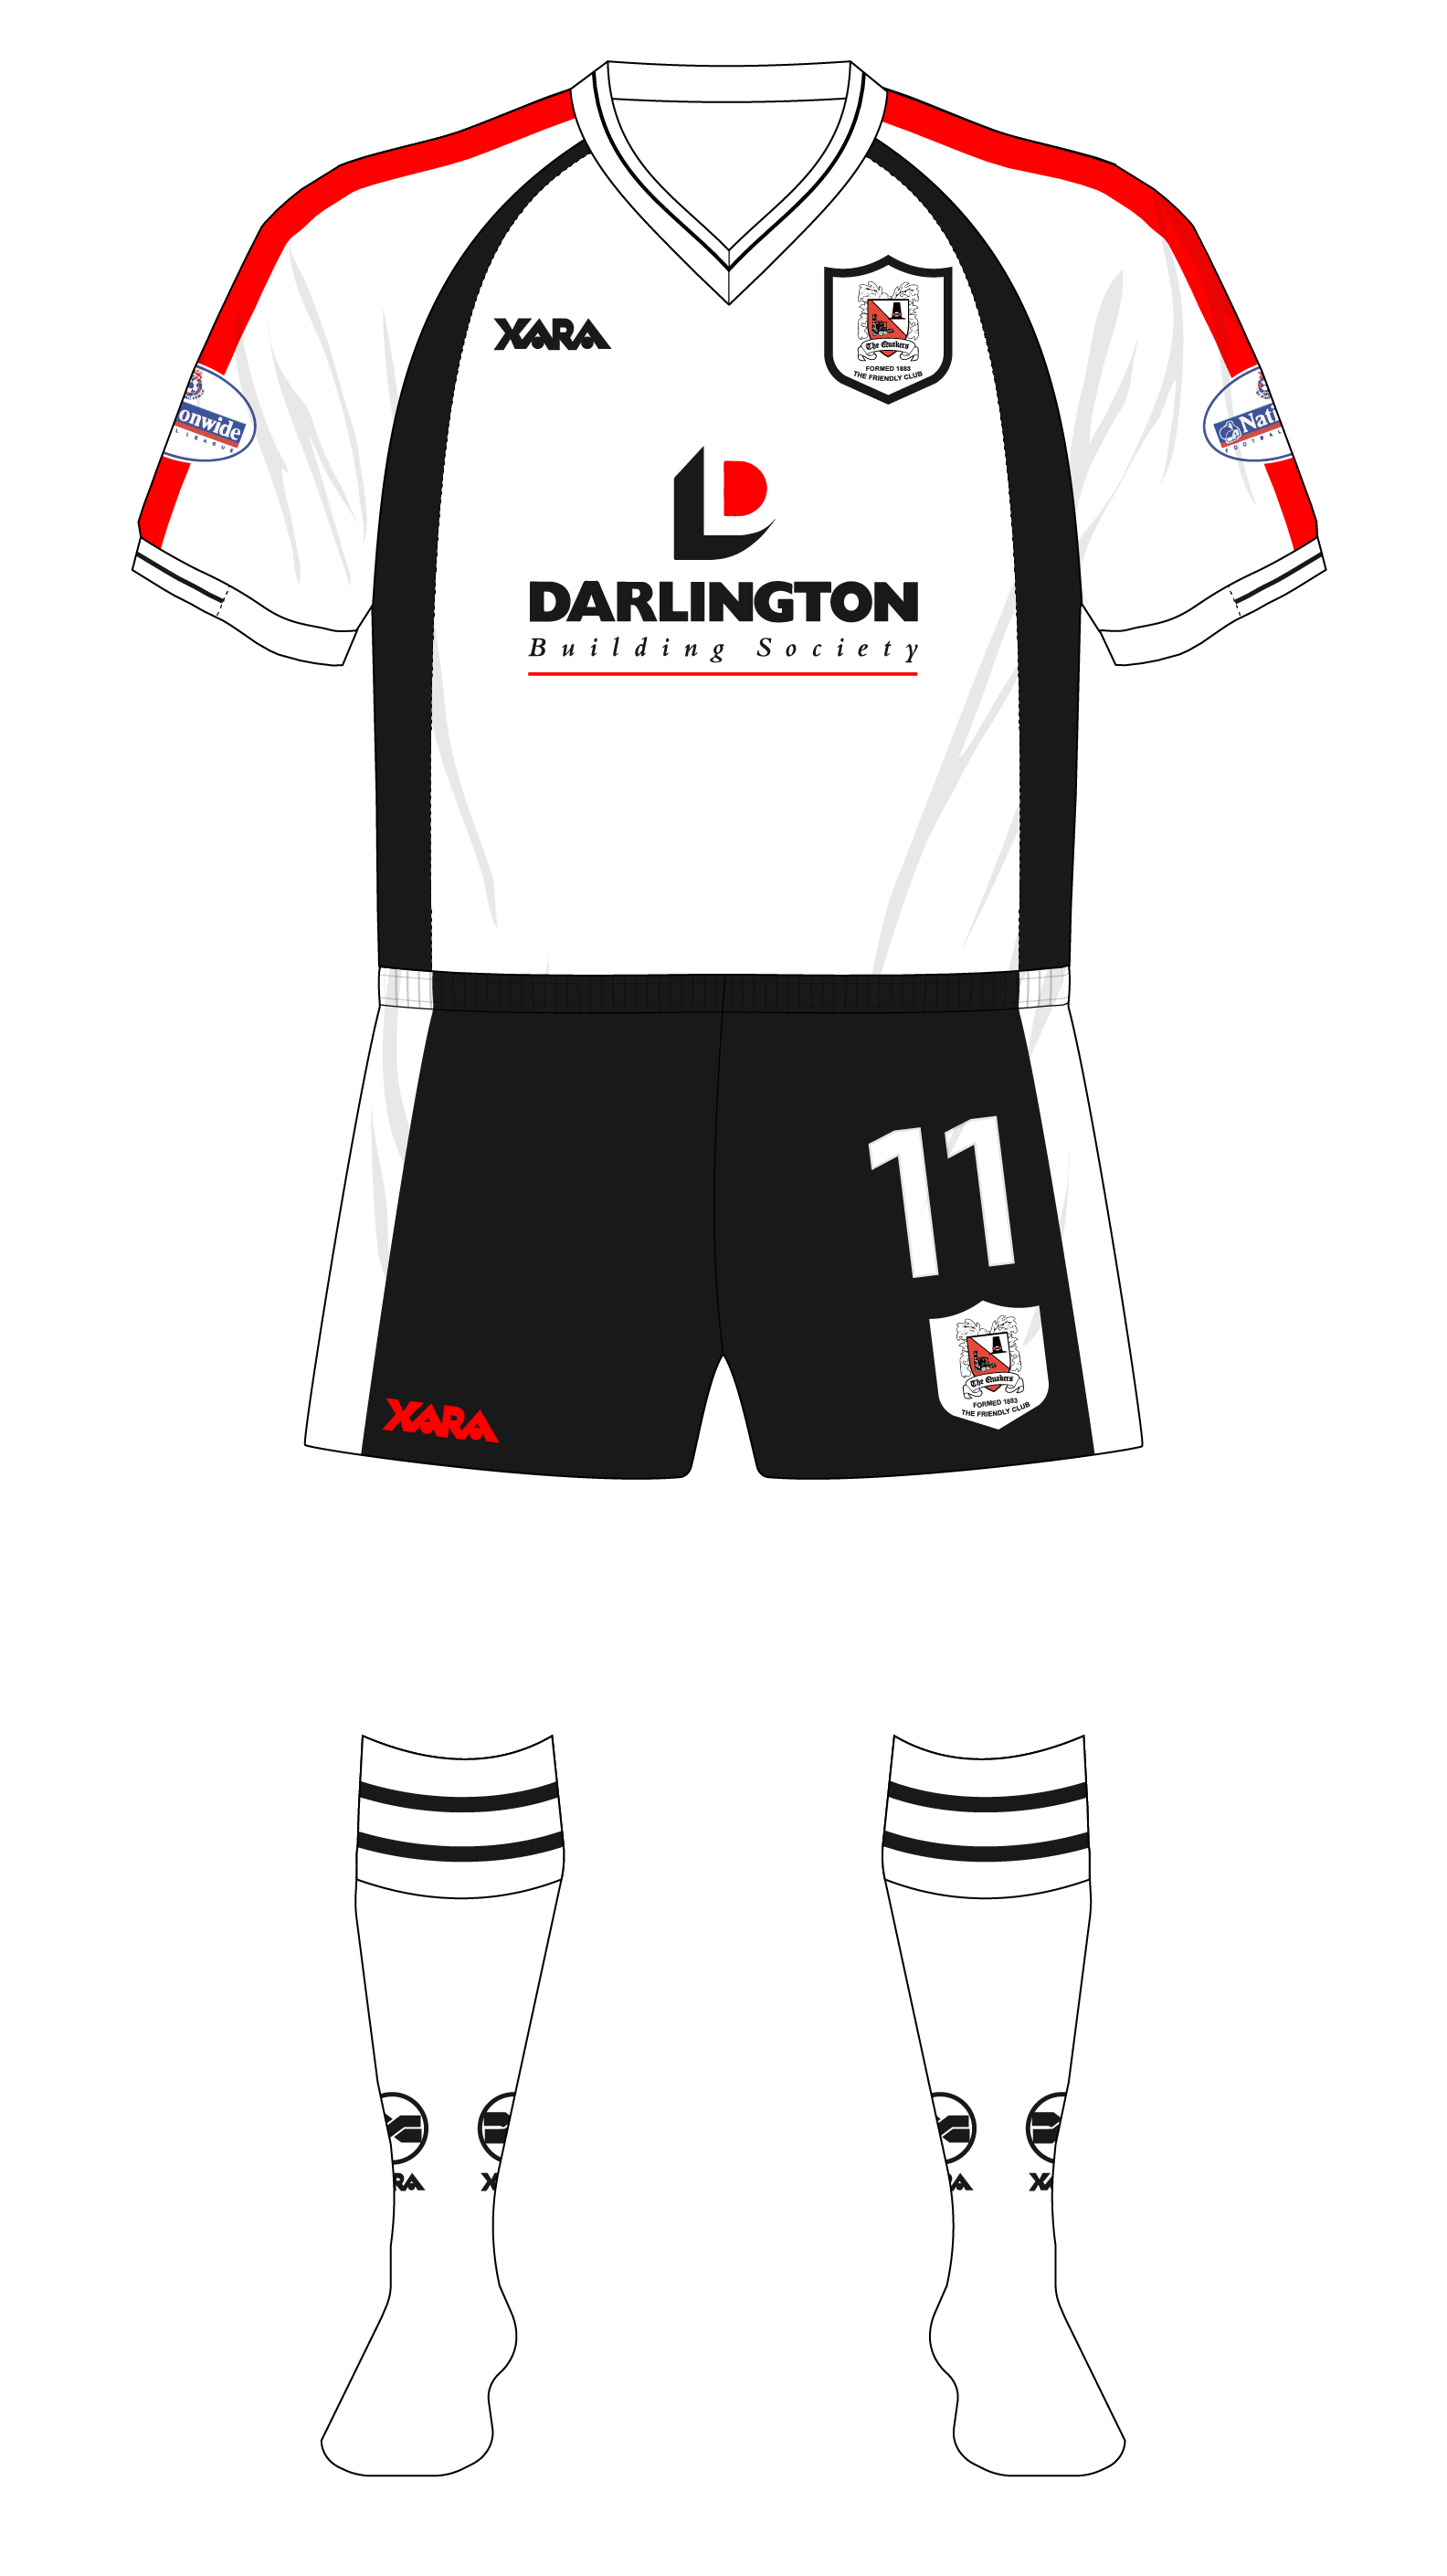 Darlington-2001-2001-Xara-home-shirt-Hull-01